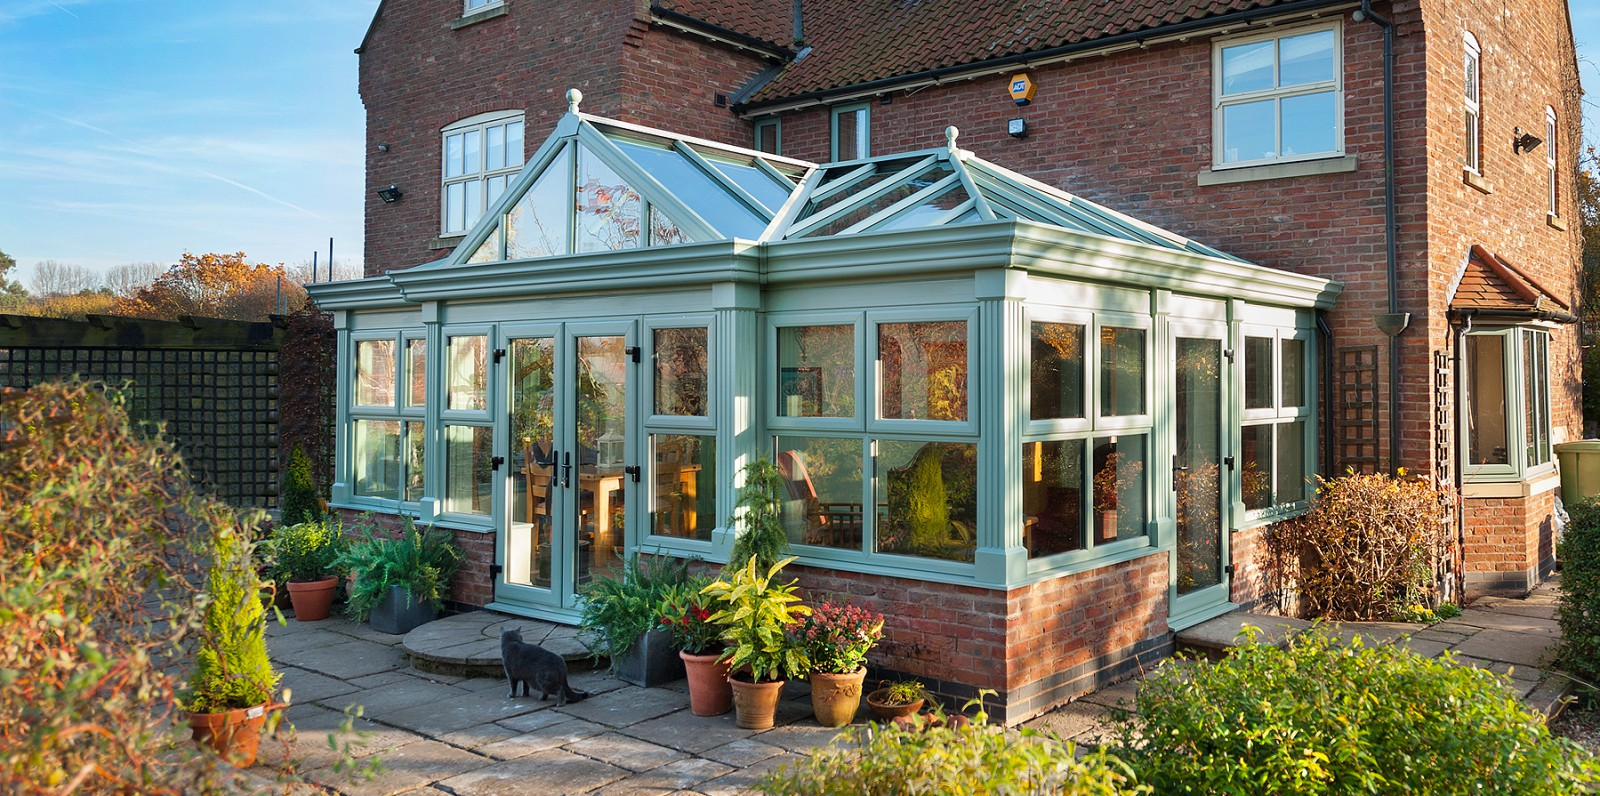 Regency Orangeries and Conservatories